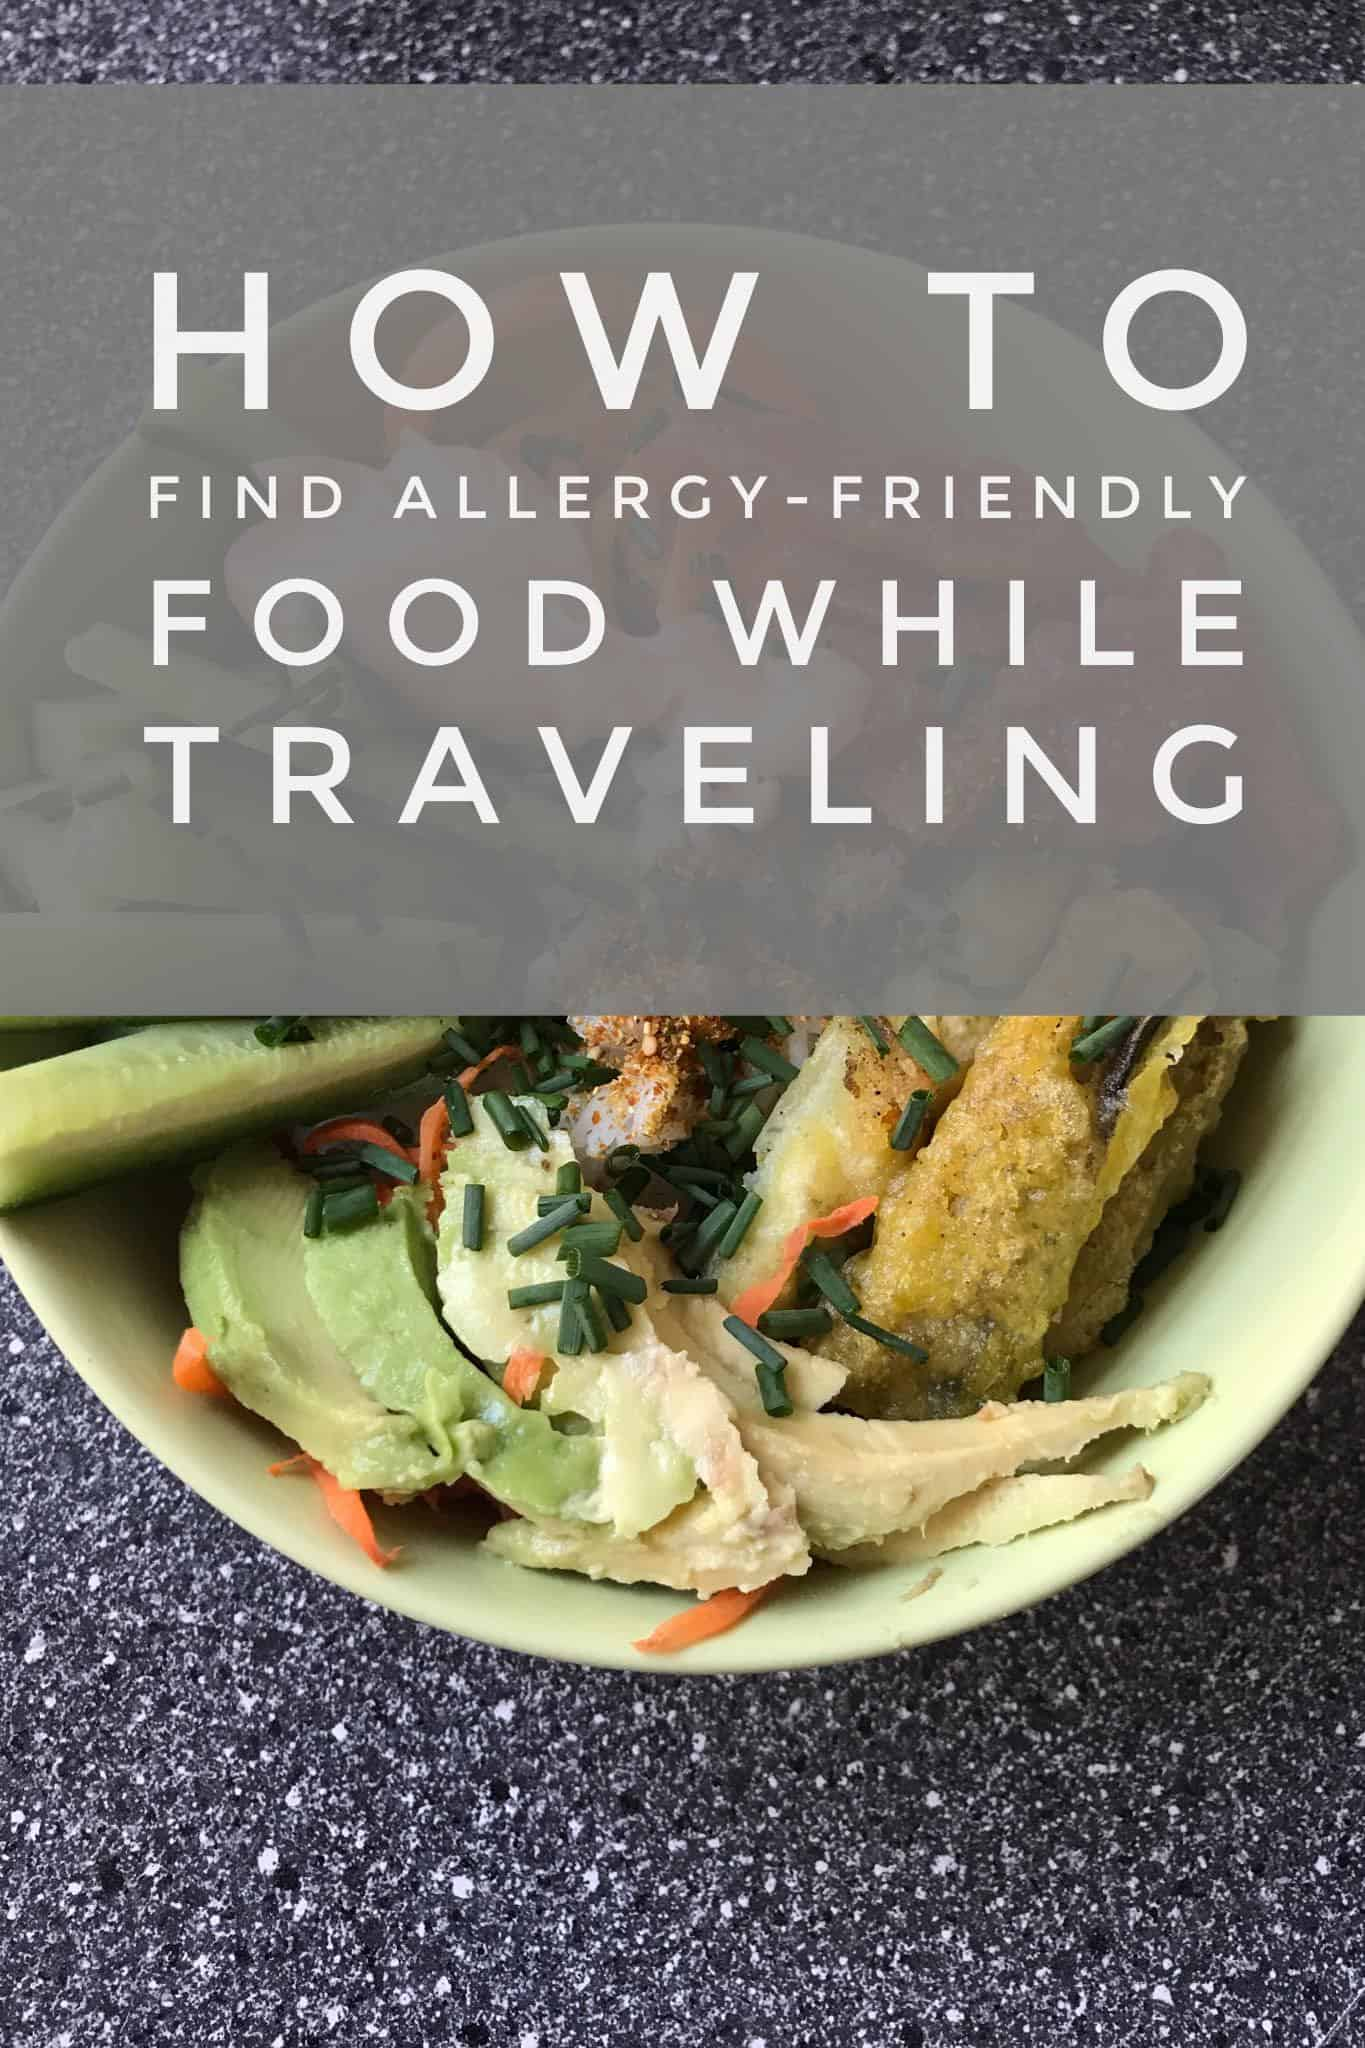 How to find allergy-friendly food while traveling. Gluten free, soy free, dairy free food.